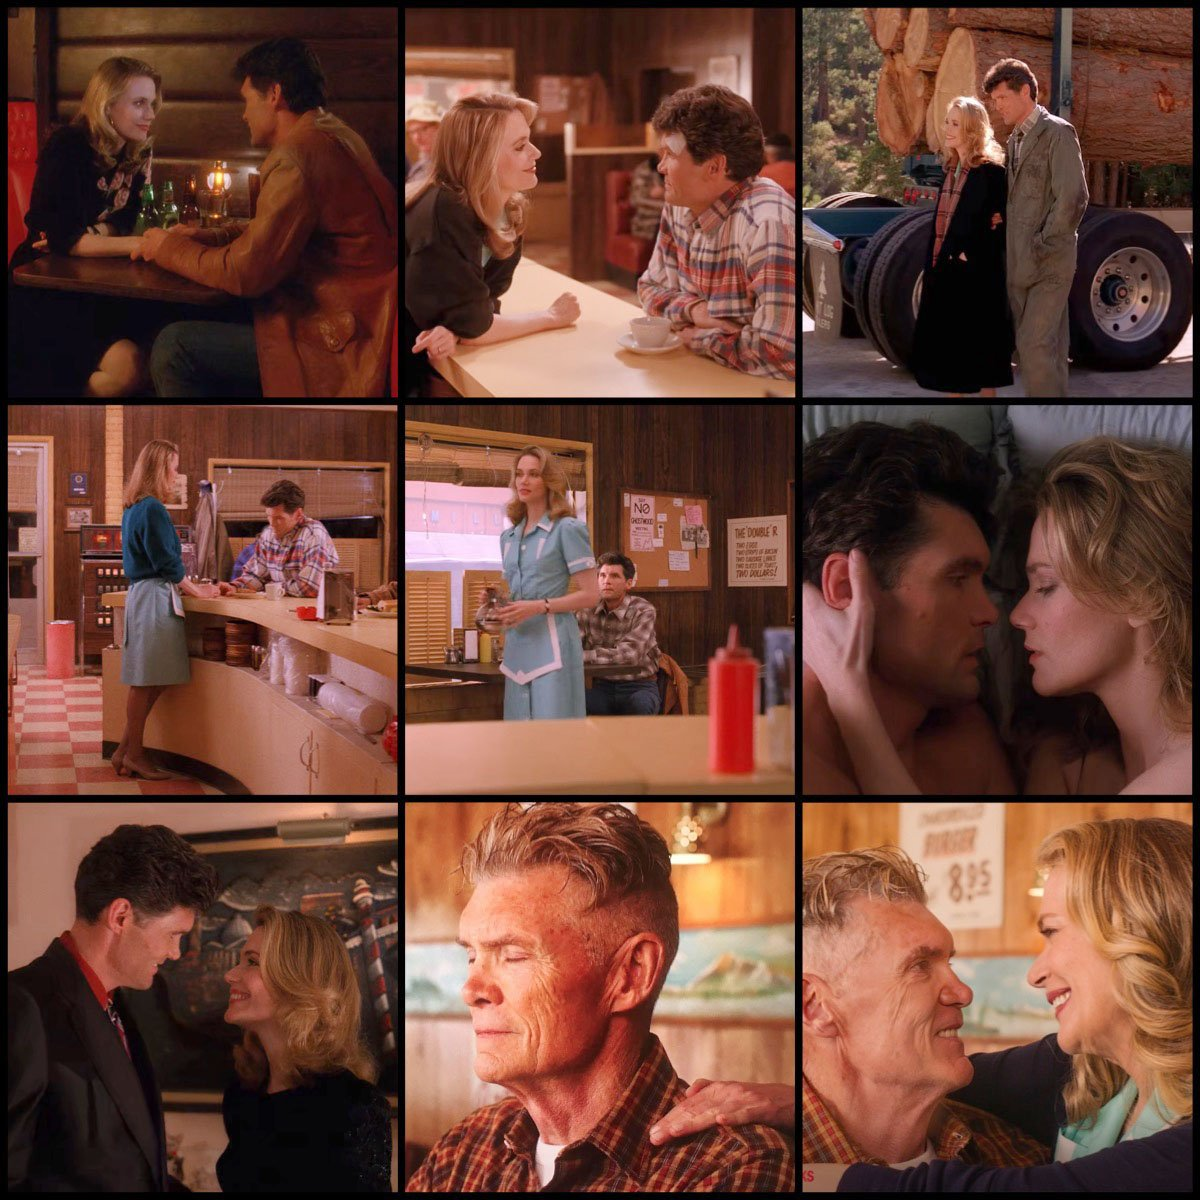 I've been loving you too long to stop now #TwinPeaks #RelationshipGoal...